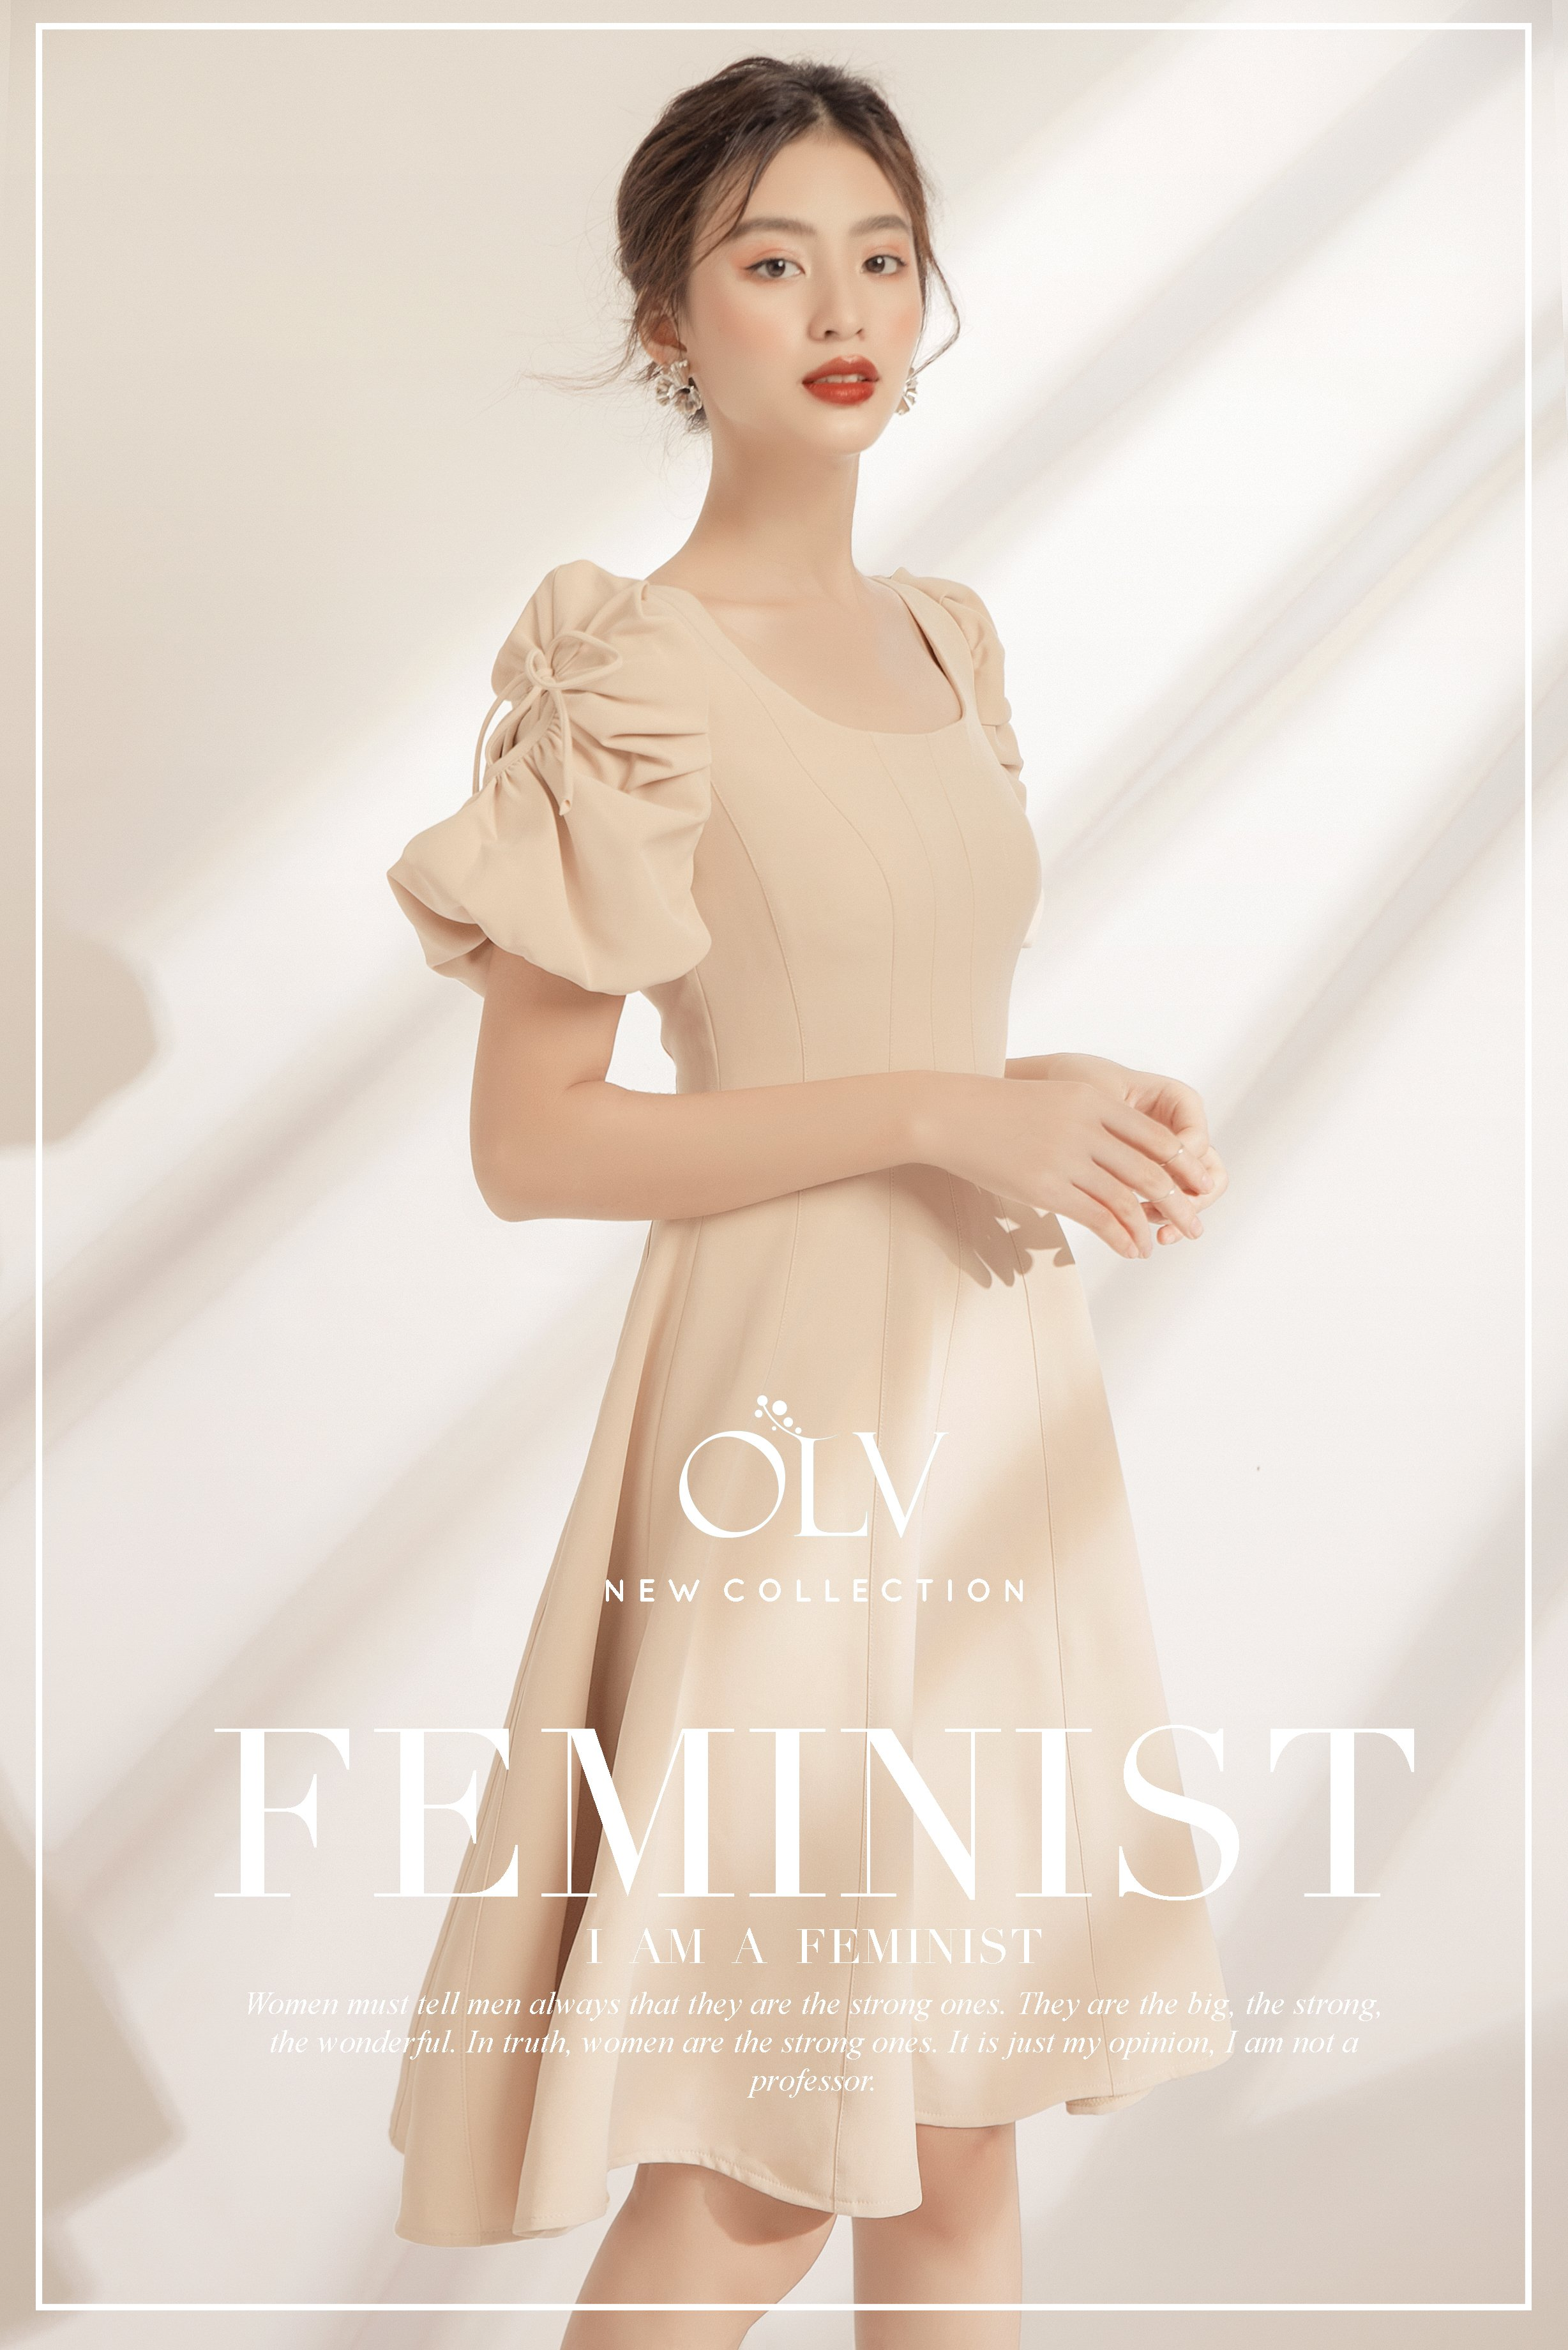 olv feminist i the 1st collection